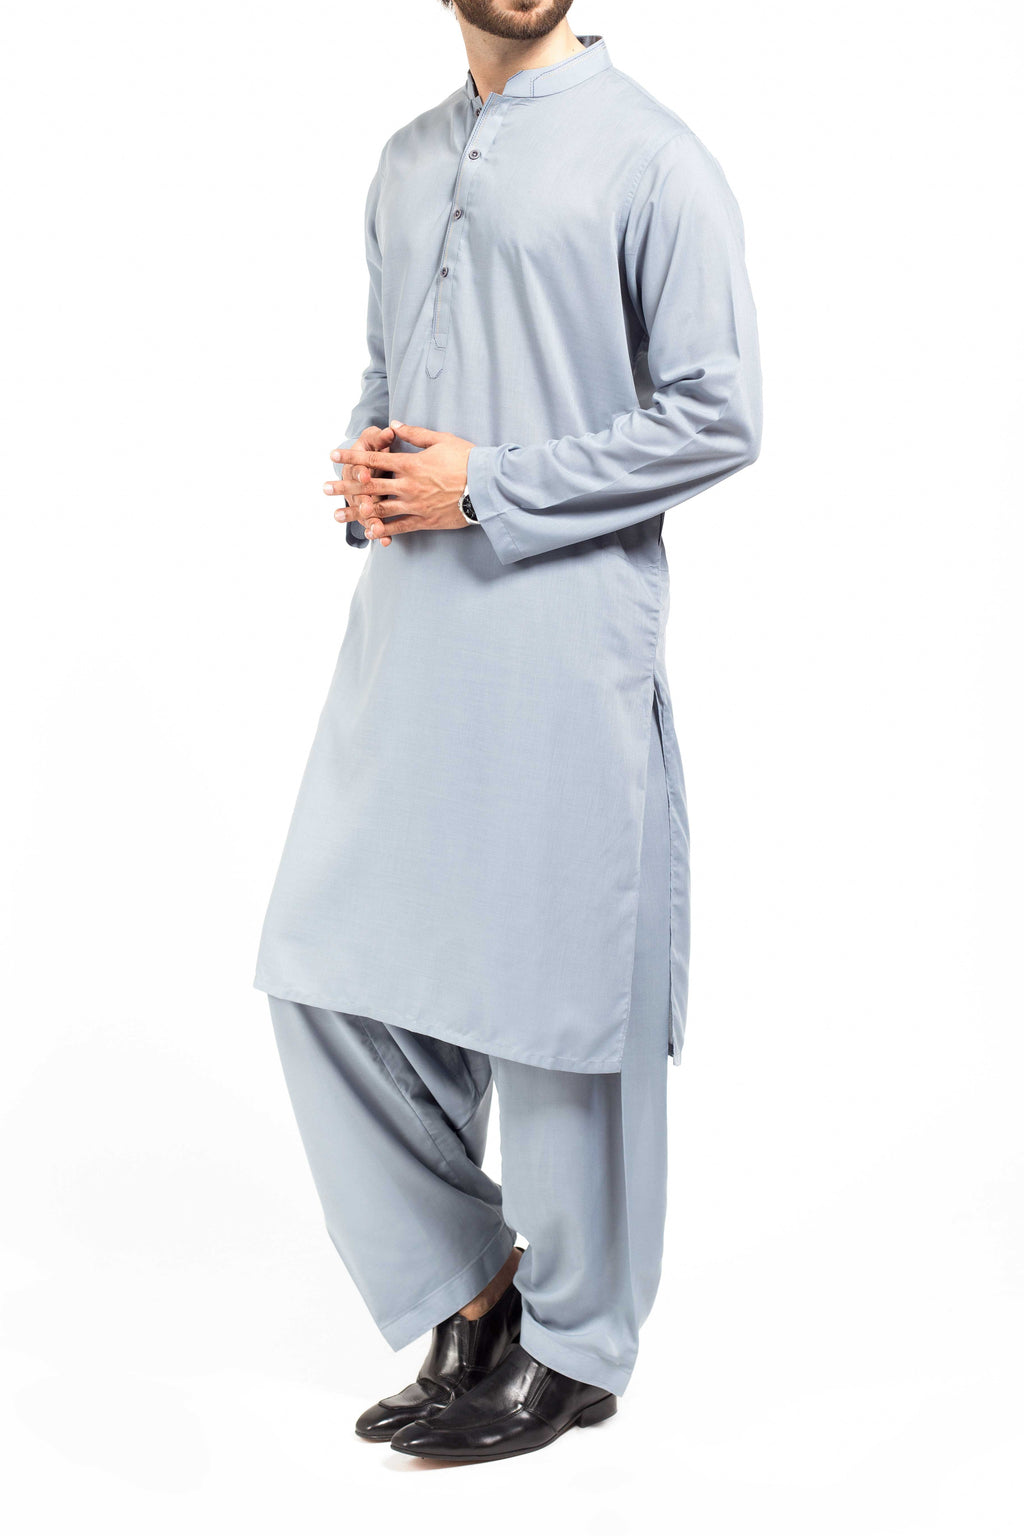 Image of   in Greyish Blue SKU: RQ-17305-Large-Greyish Blue